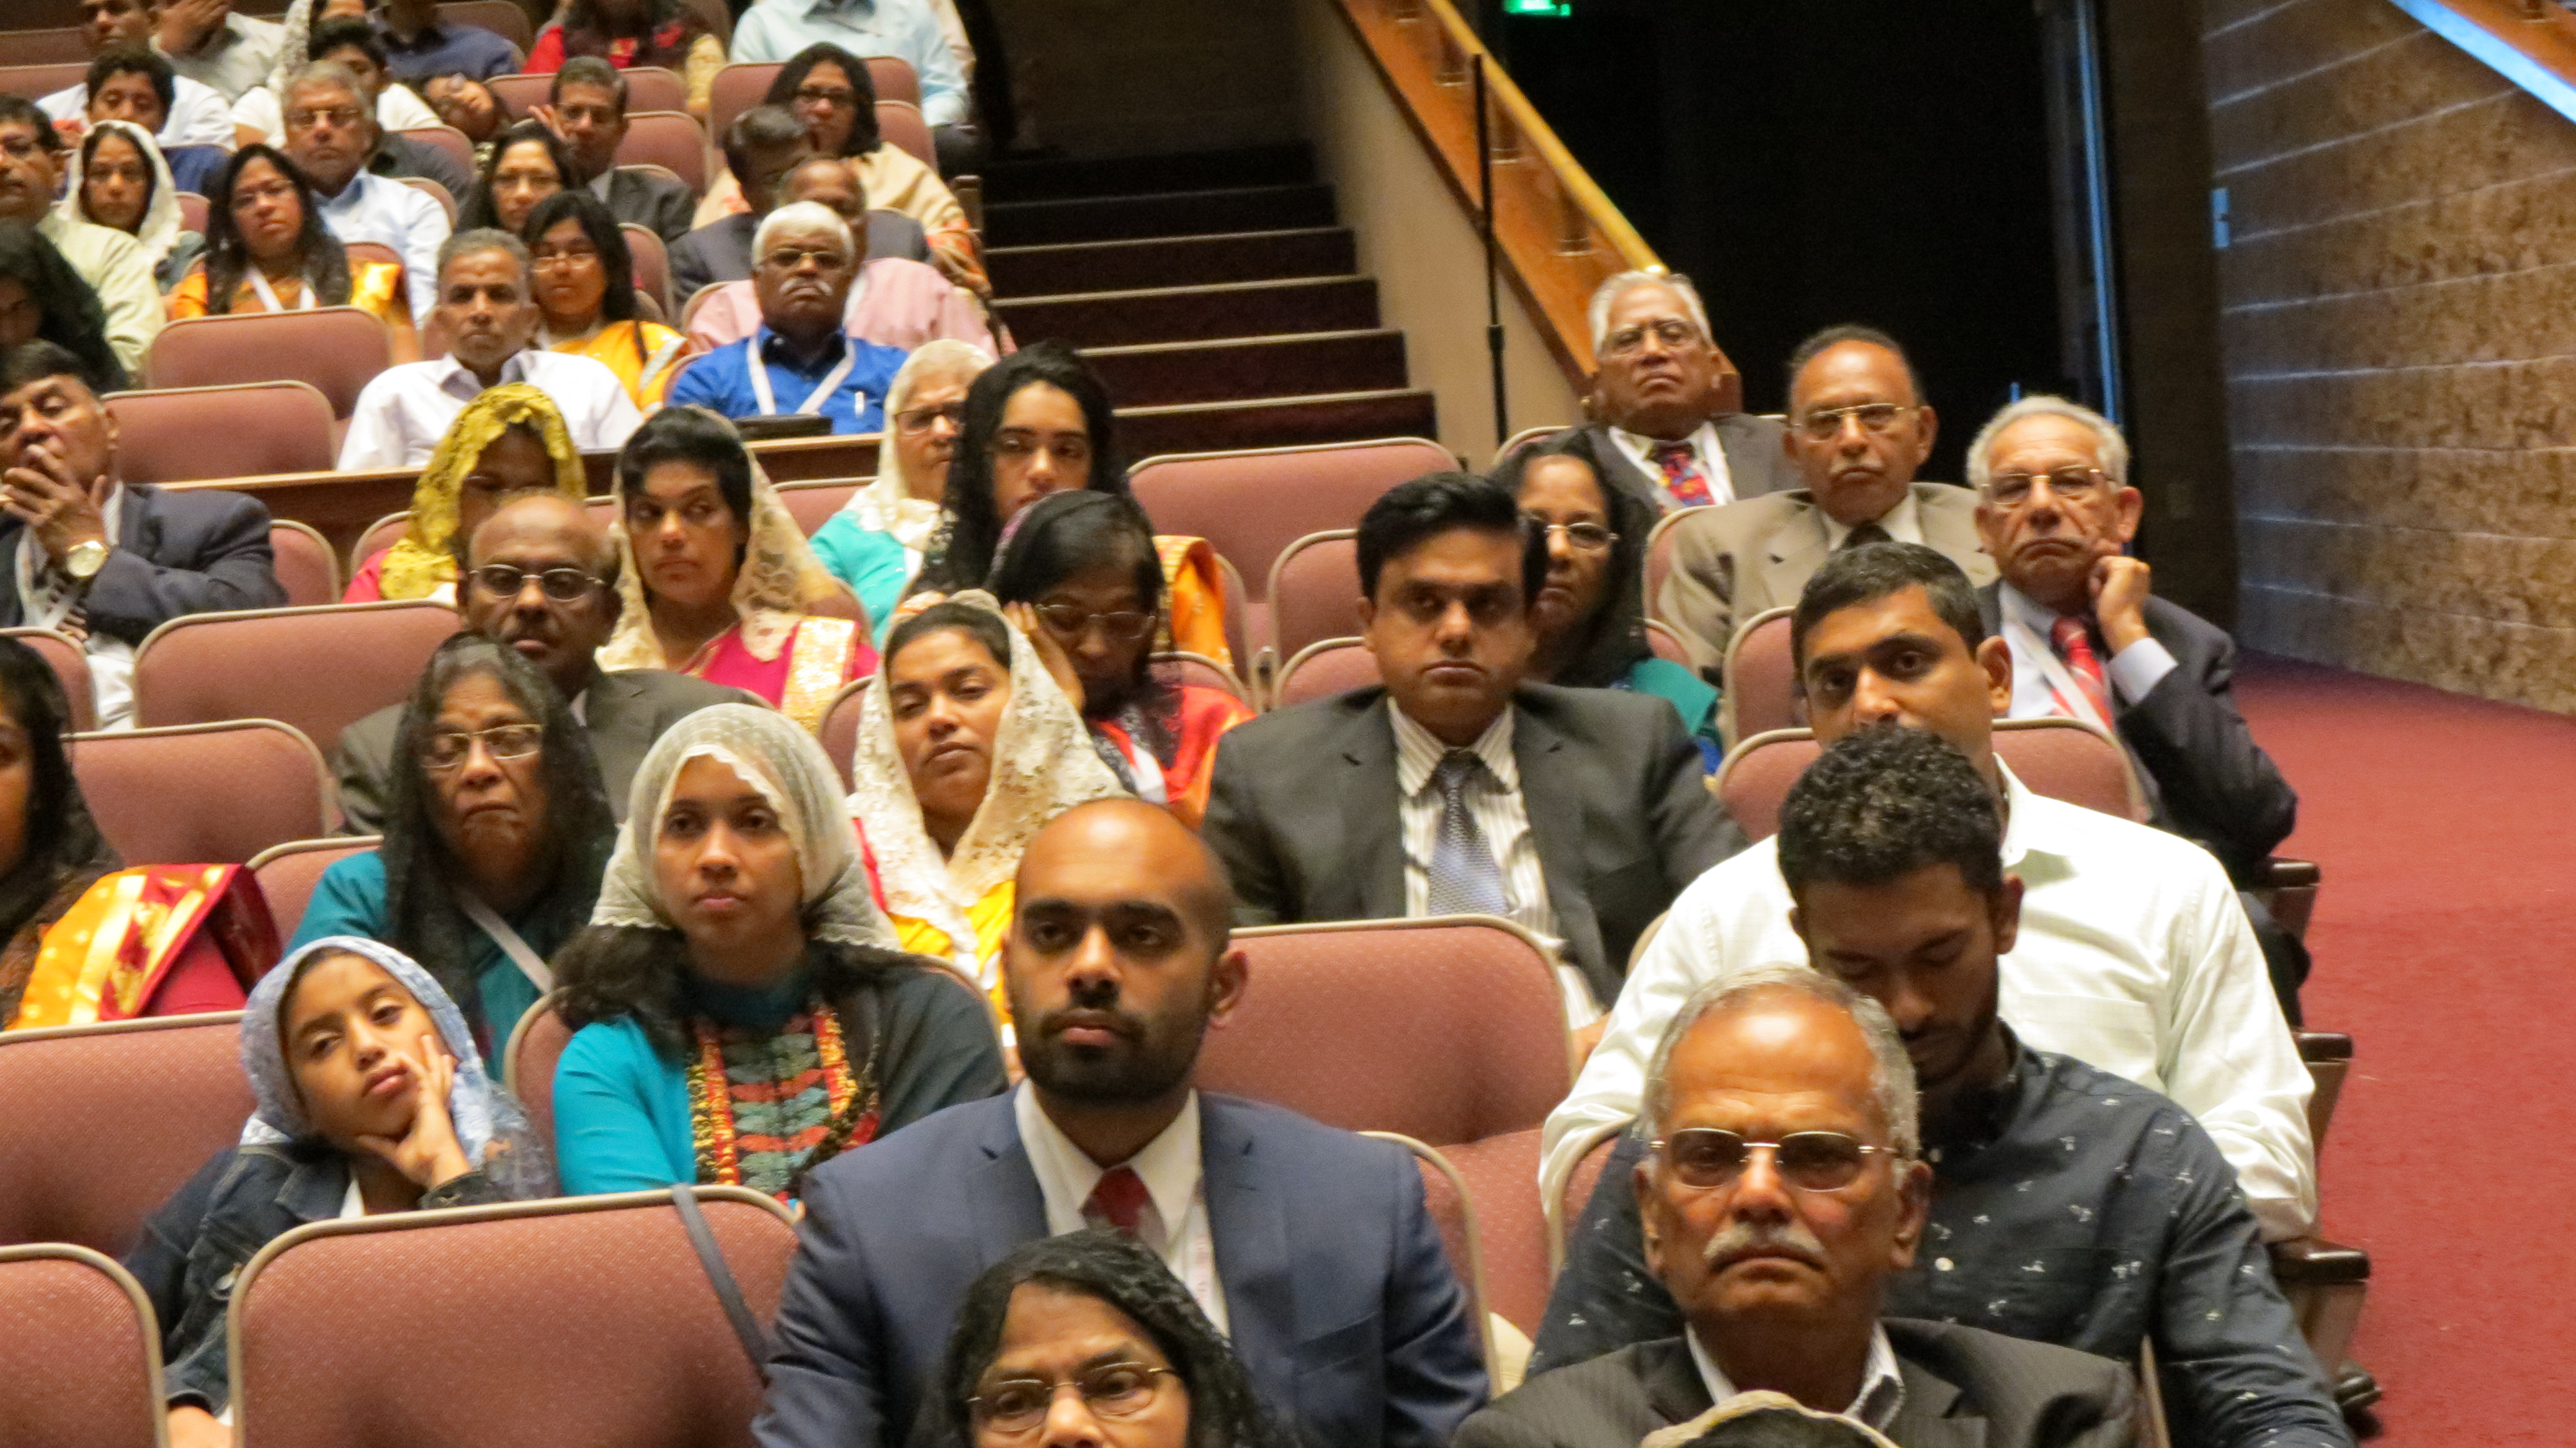 5th Day PLENARY AUDIENCE 11